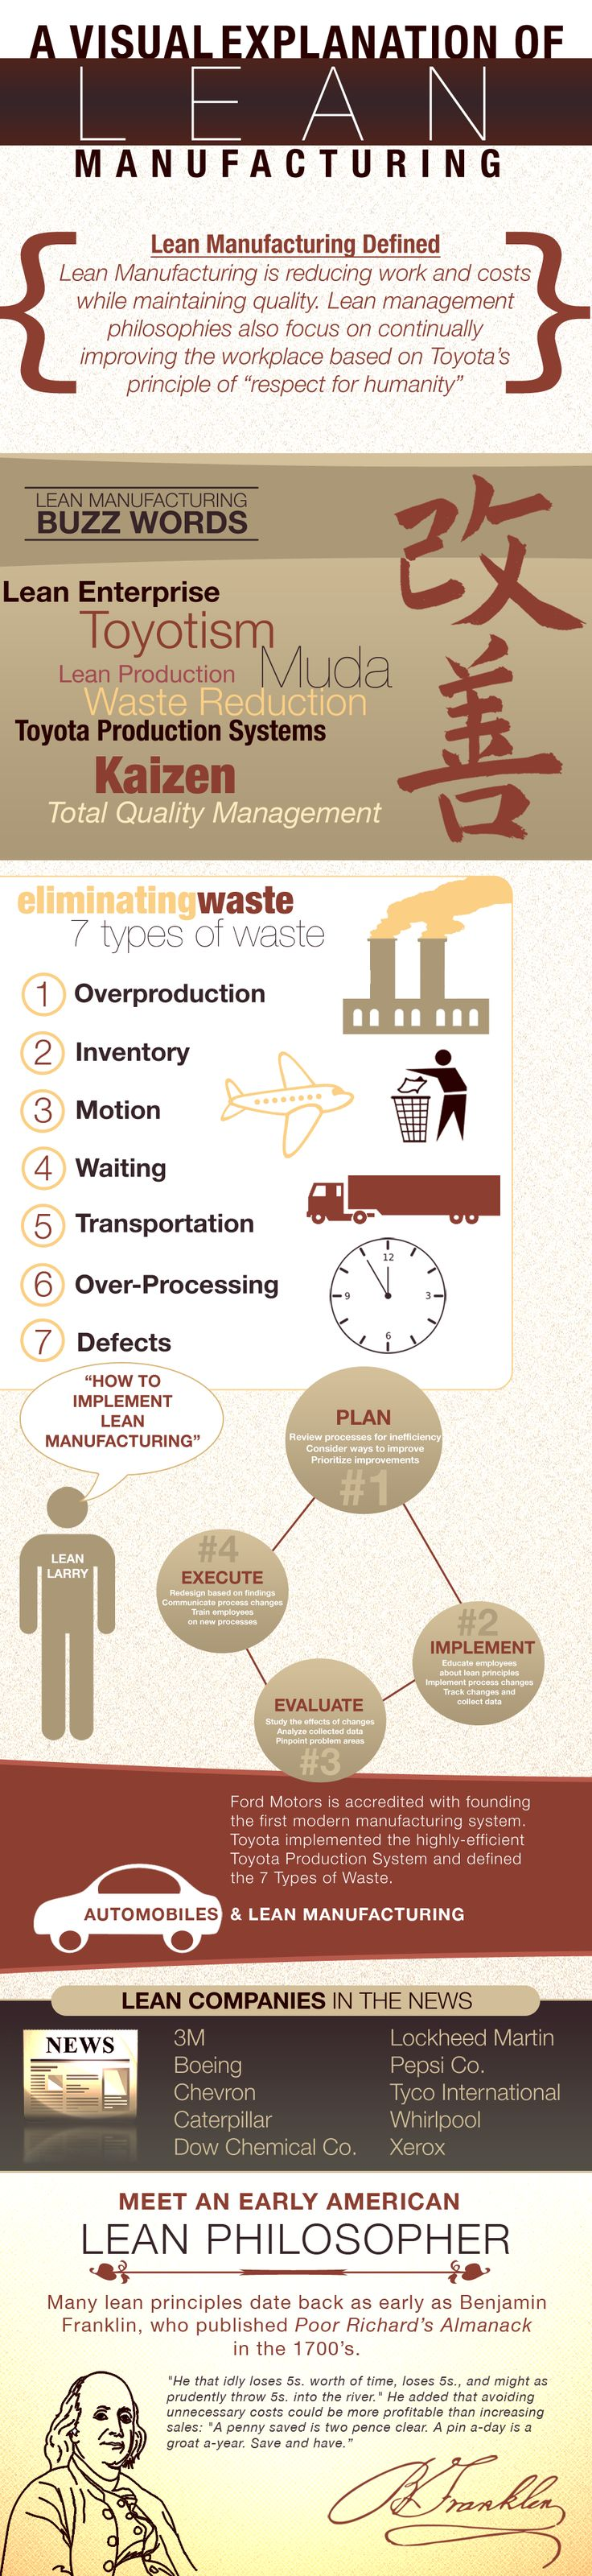 A Visual Explanation of LEAN Manufacturing. Lean Manufacturing is reducing work and coasts while maintain quality.